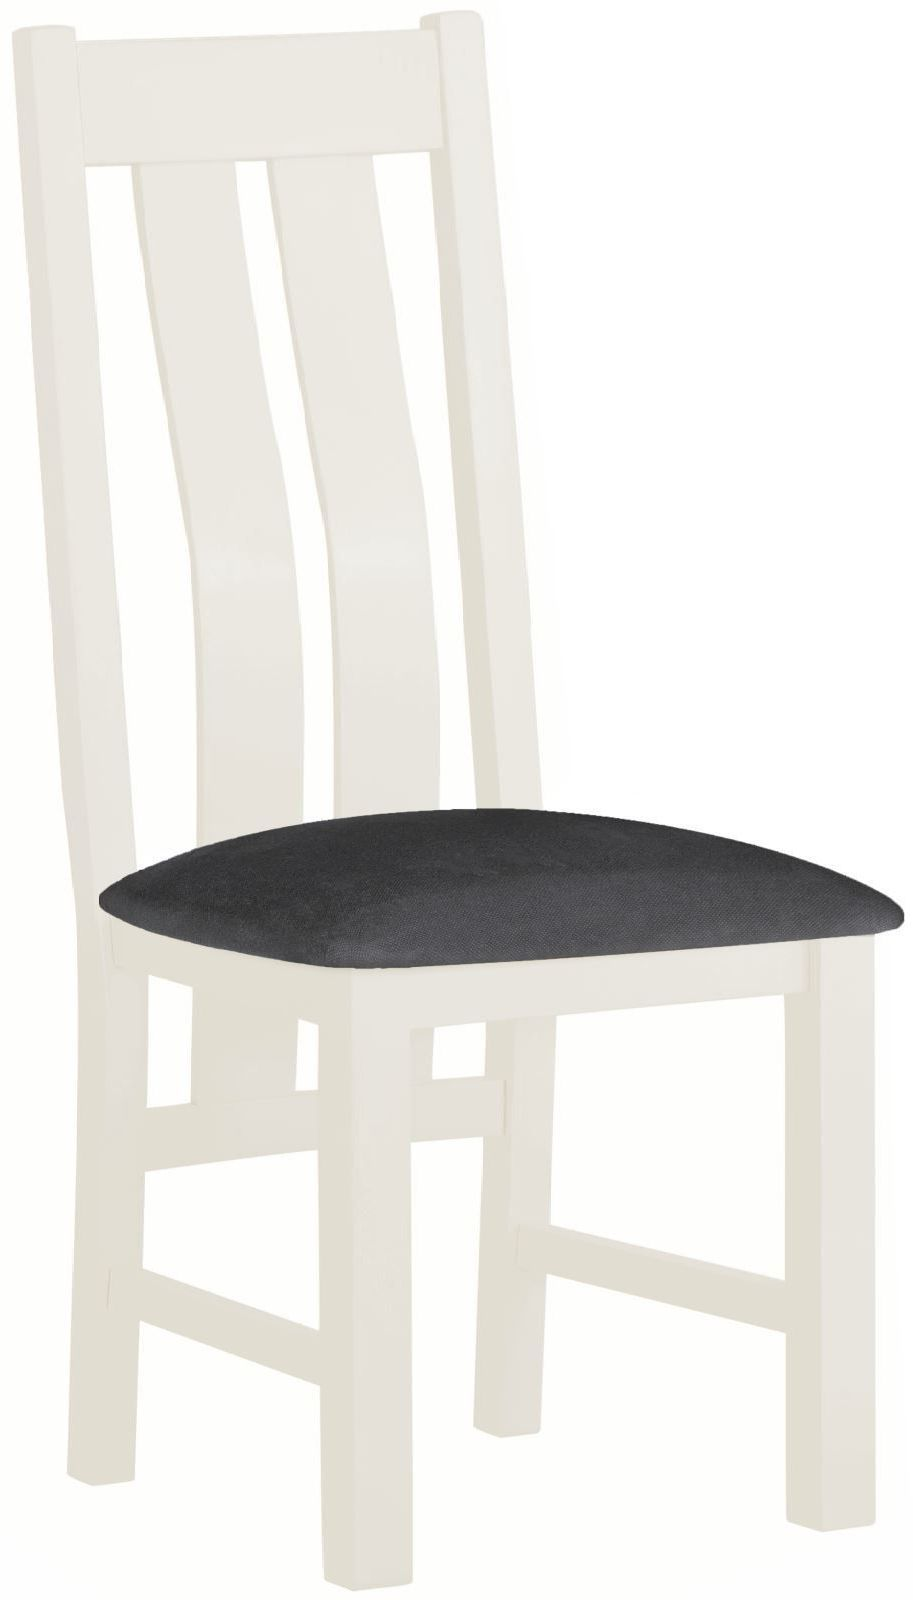 Stratton White Dining Chair  Height 1010 Width 440 Depth 530